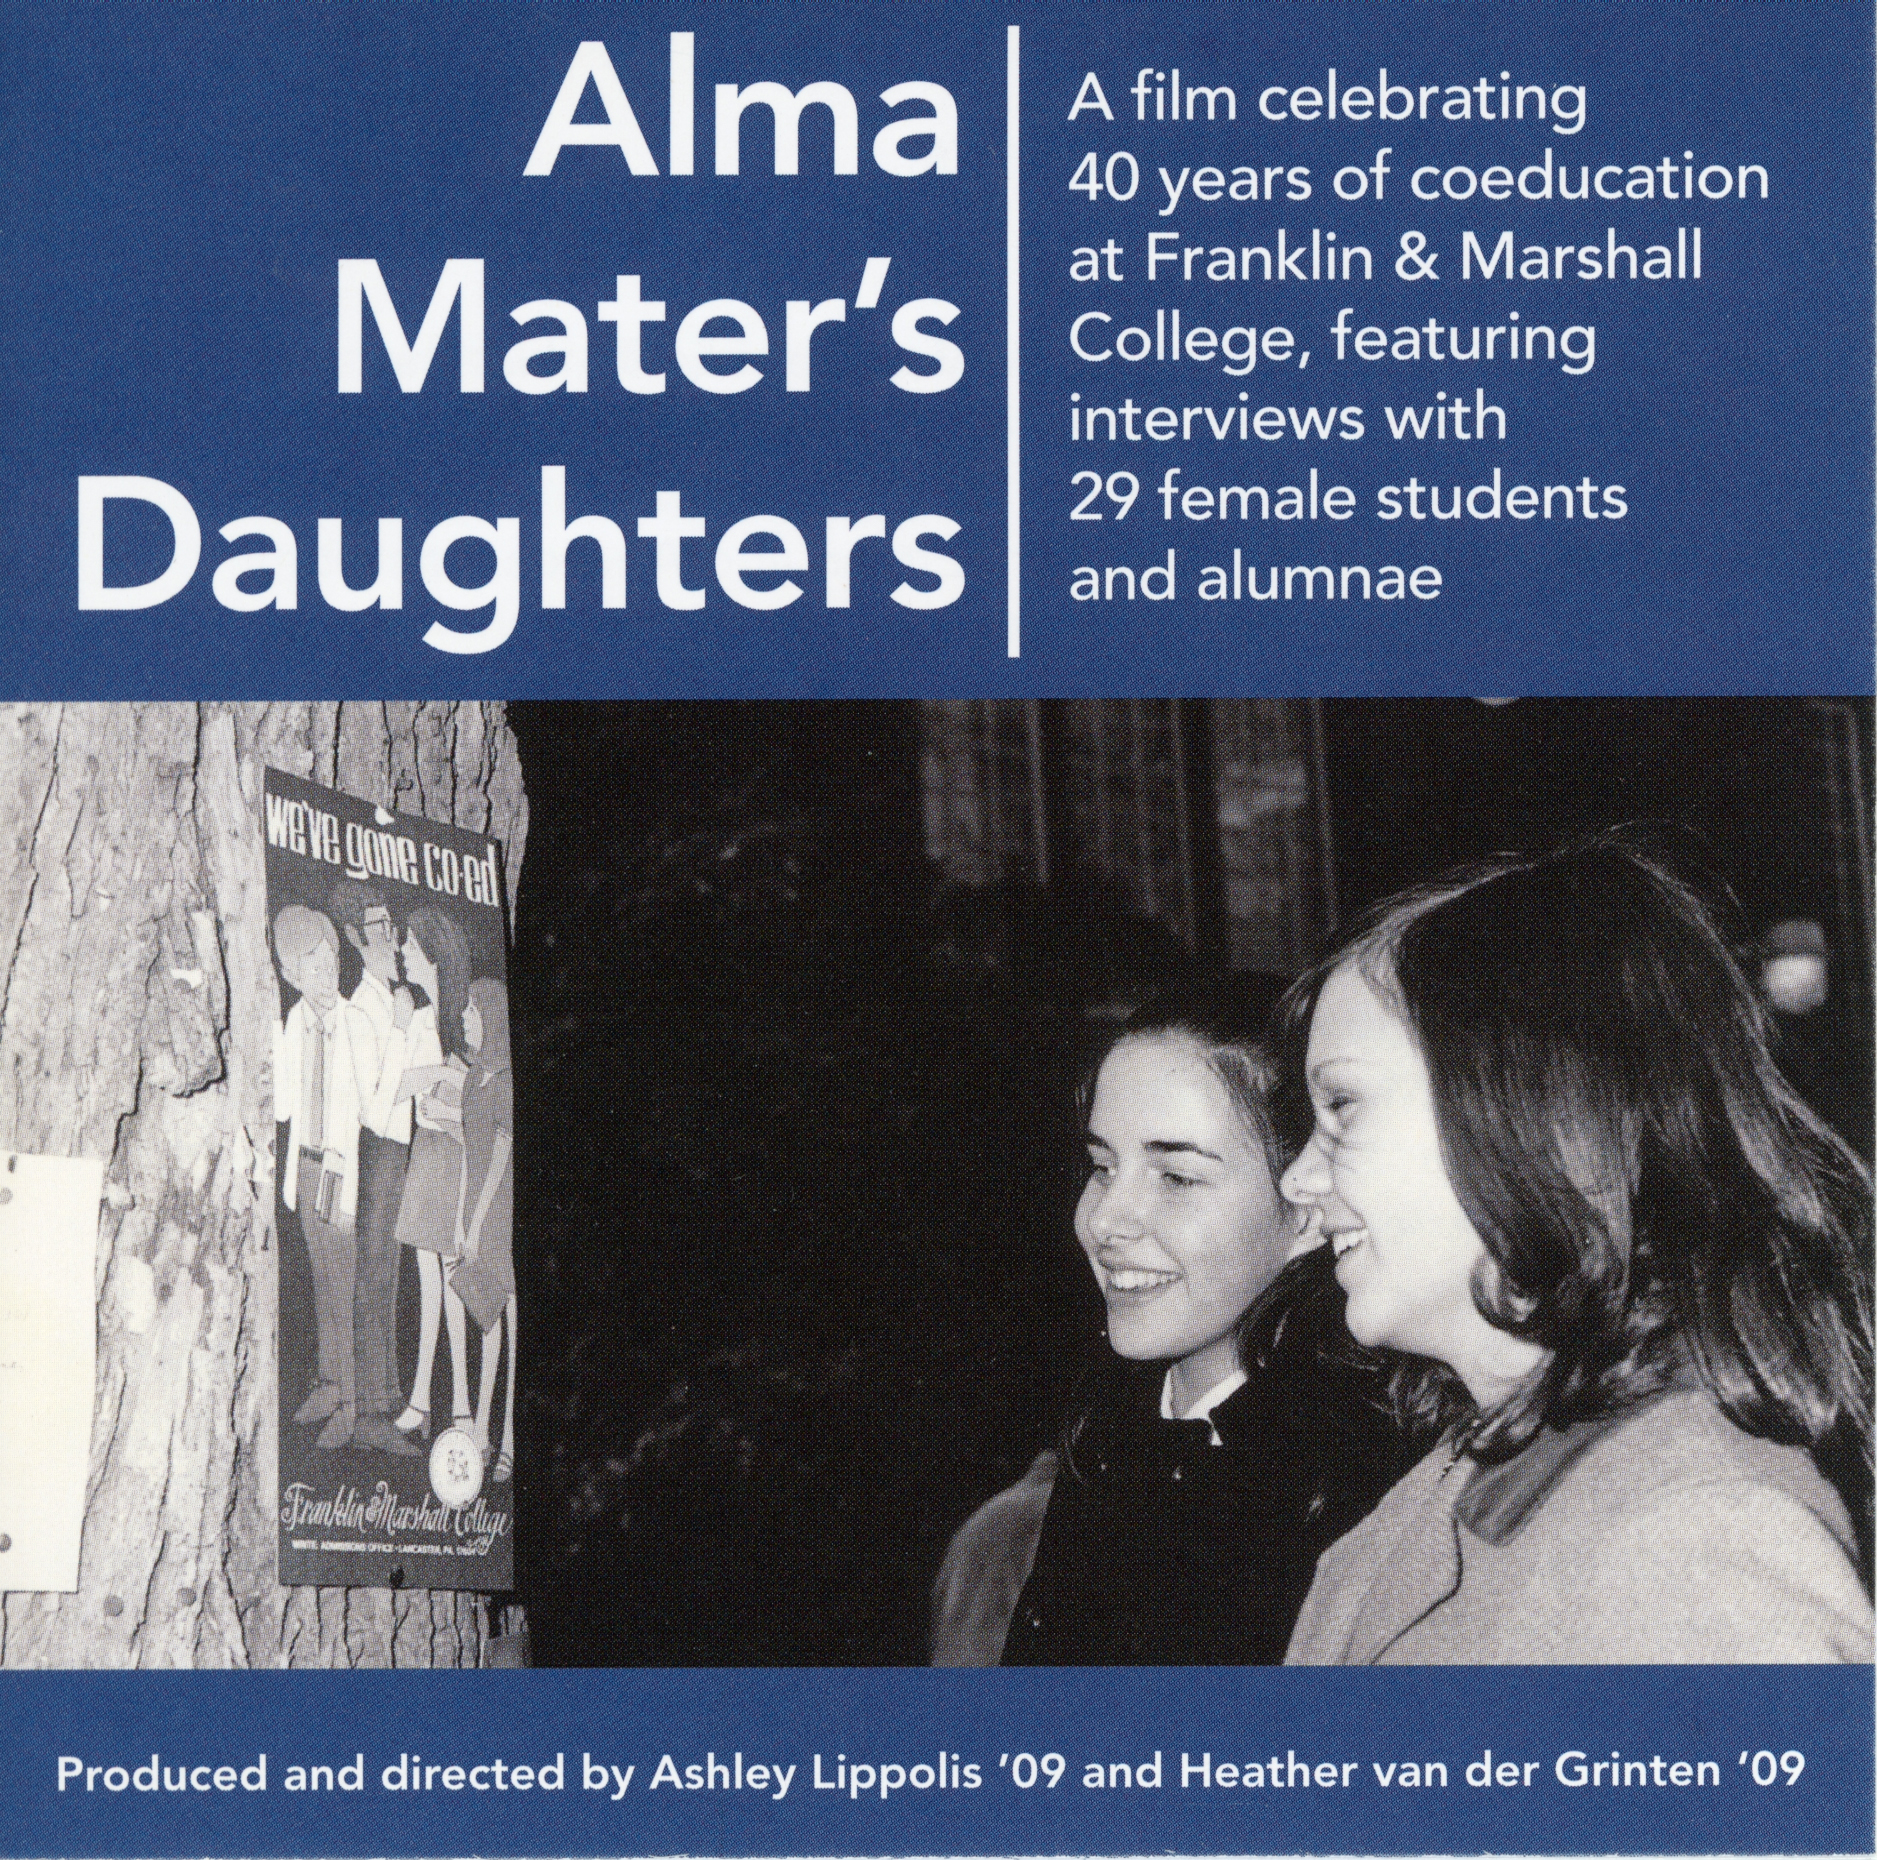 Alma mater's daughters : a film celebrating 40 years of coeducation at Franklin & Marshall College, featuring interviews with 29 female students and alumnae